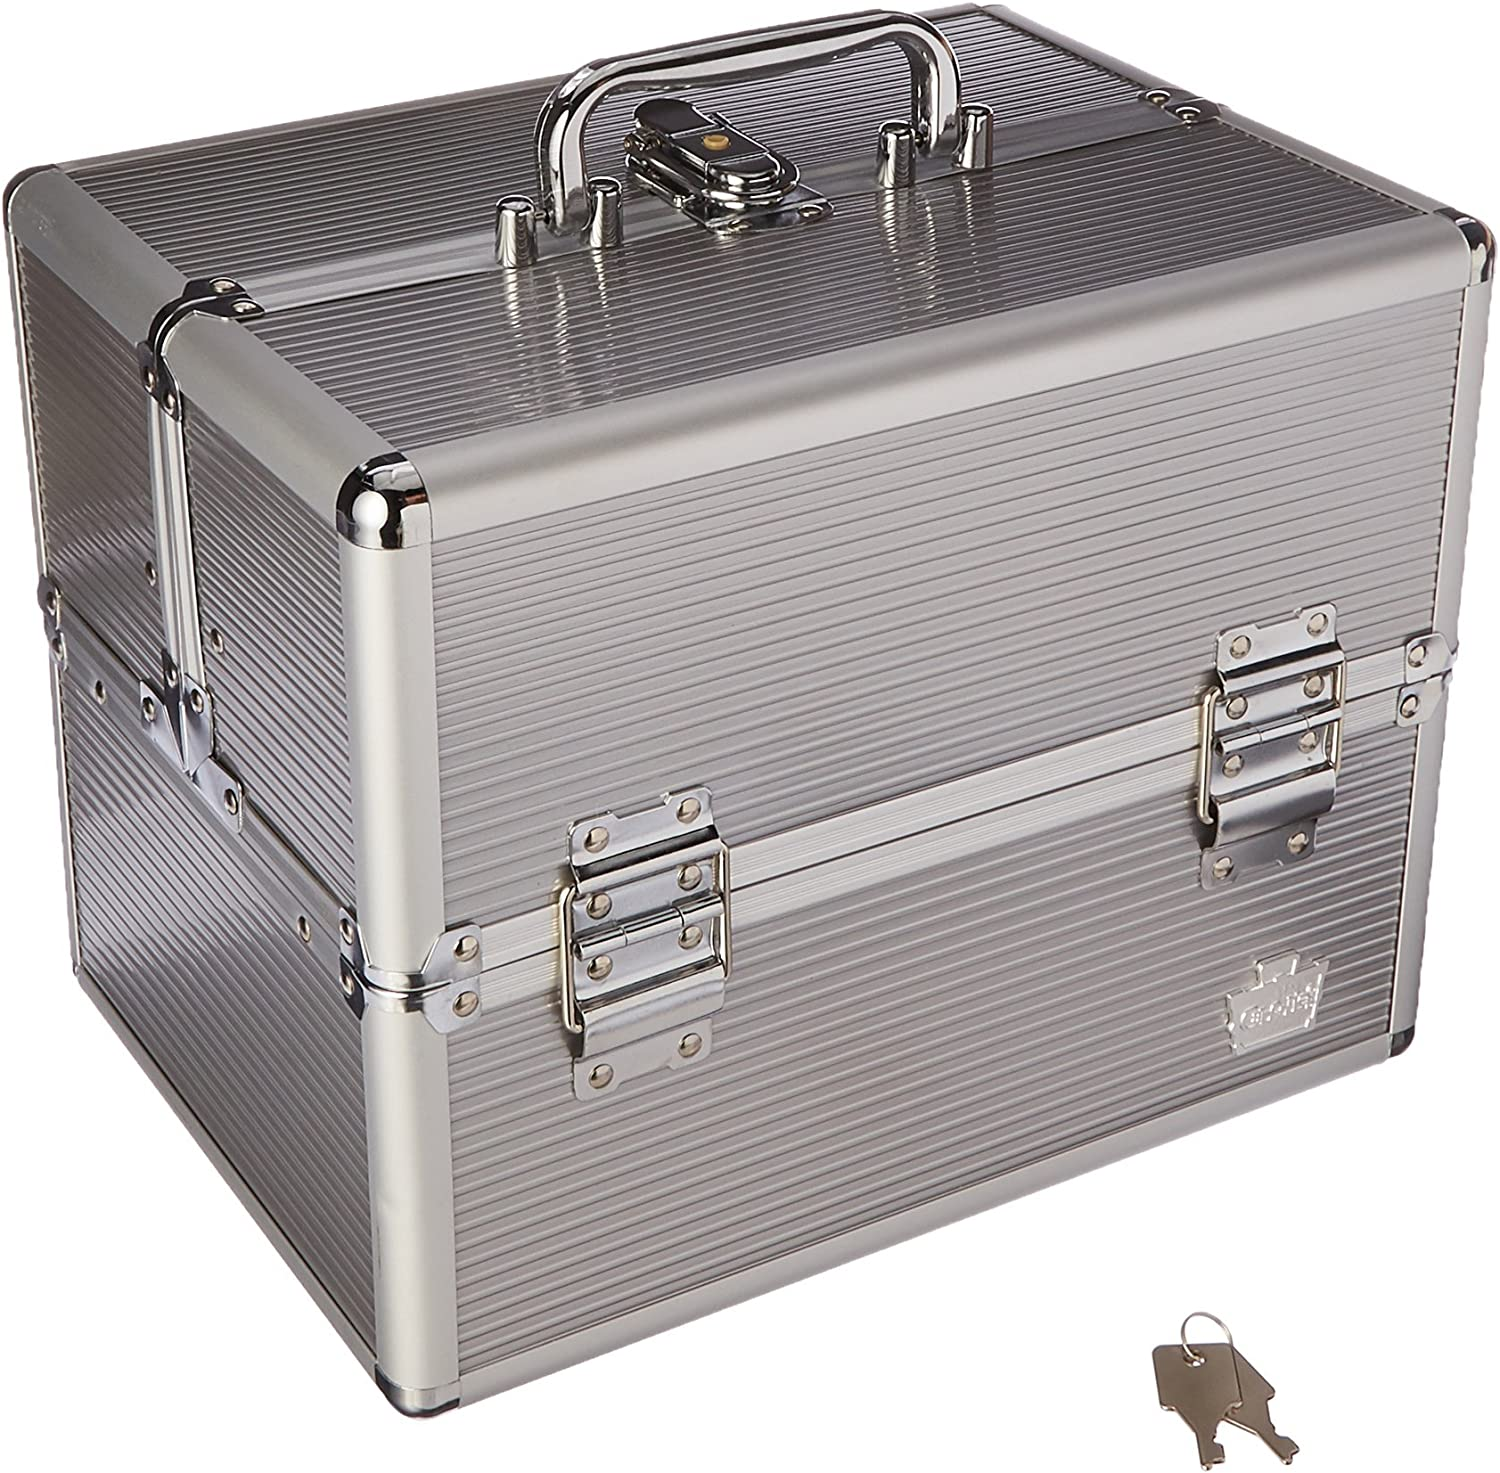 Caboodles Goddess 4 Tray Train Case, Cosmetic Storage Case Organizer, Silver, 4.03 Lb